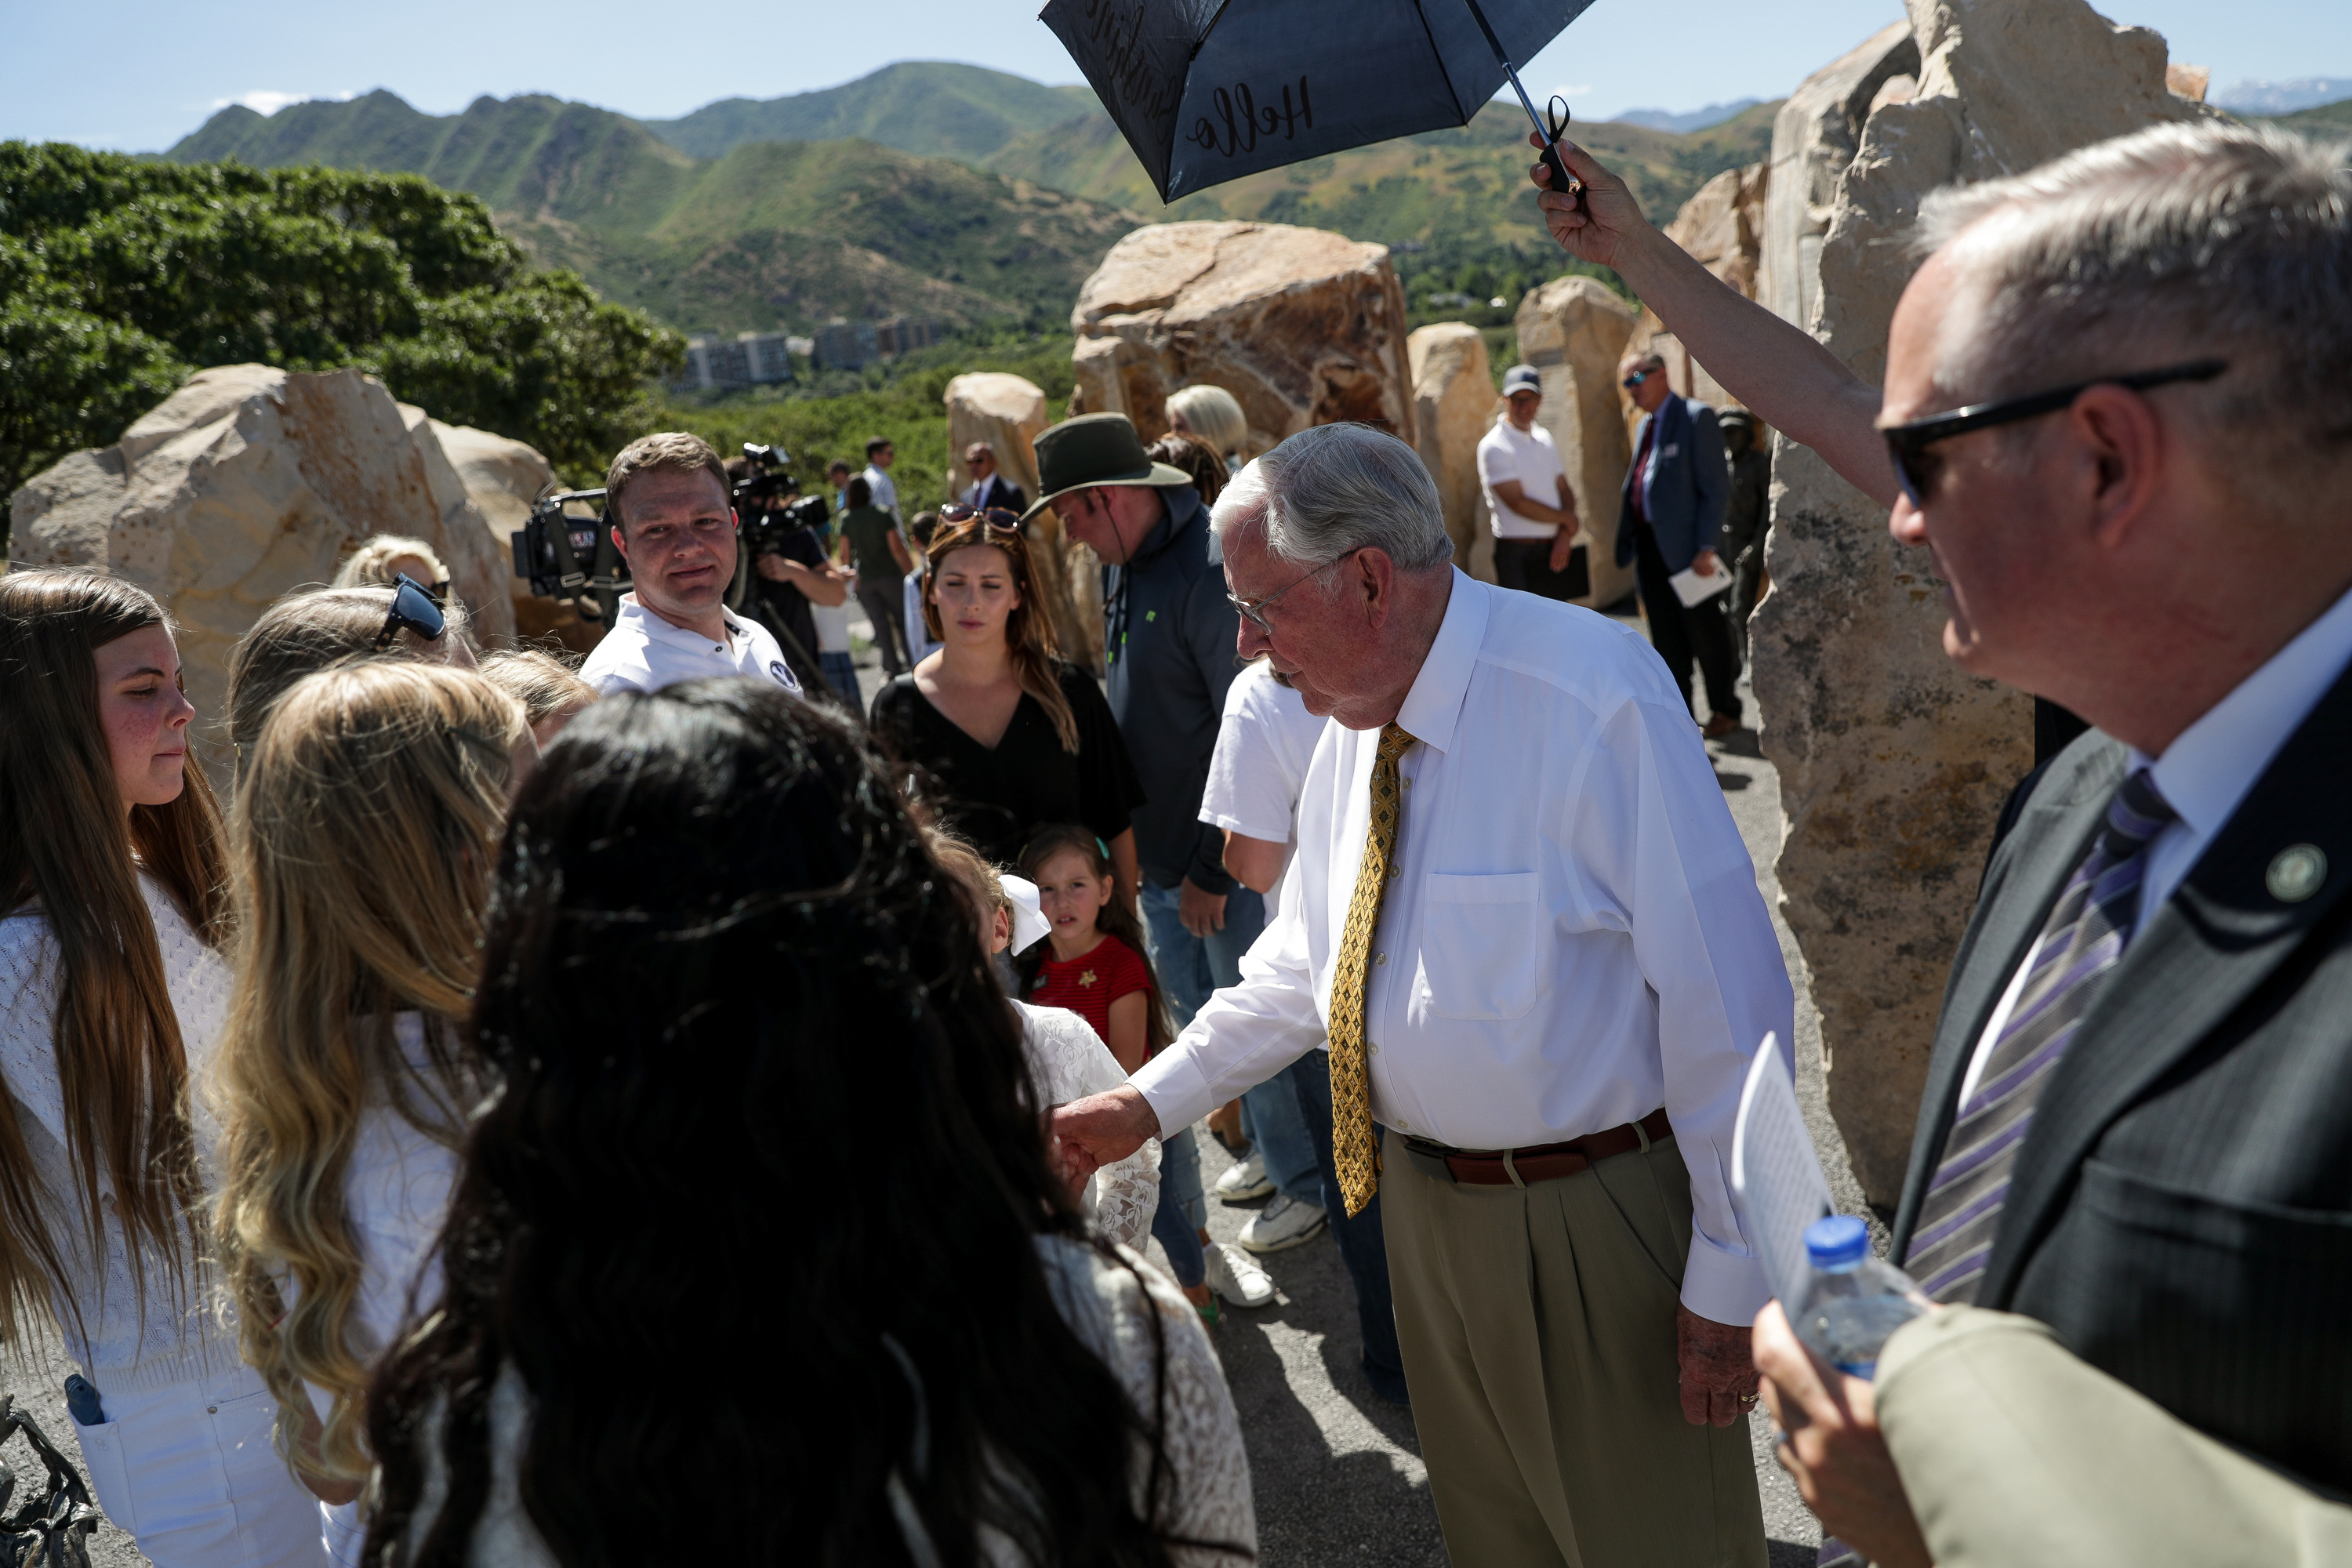 President M. Russell Ballard, acting president of the Quorum of the Twelve Apostles of The Church of Jesus Christ of Latter-day Saints, greets people after the dedication of the Children's Pioneer Memorial at This Is the Place Heritage Park in Salt Lake City on Saturday, July 20, 2019.